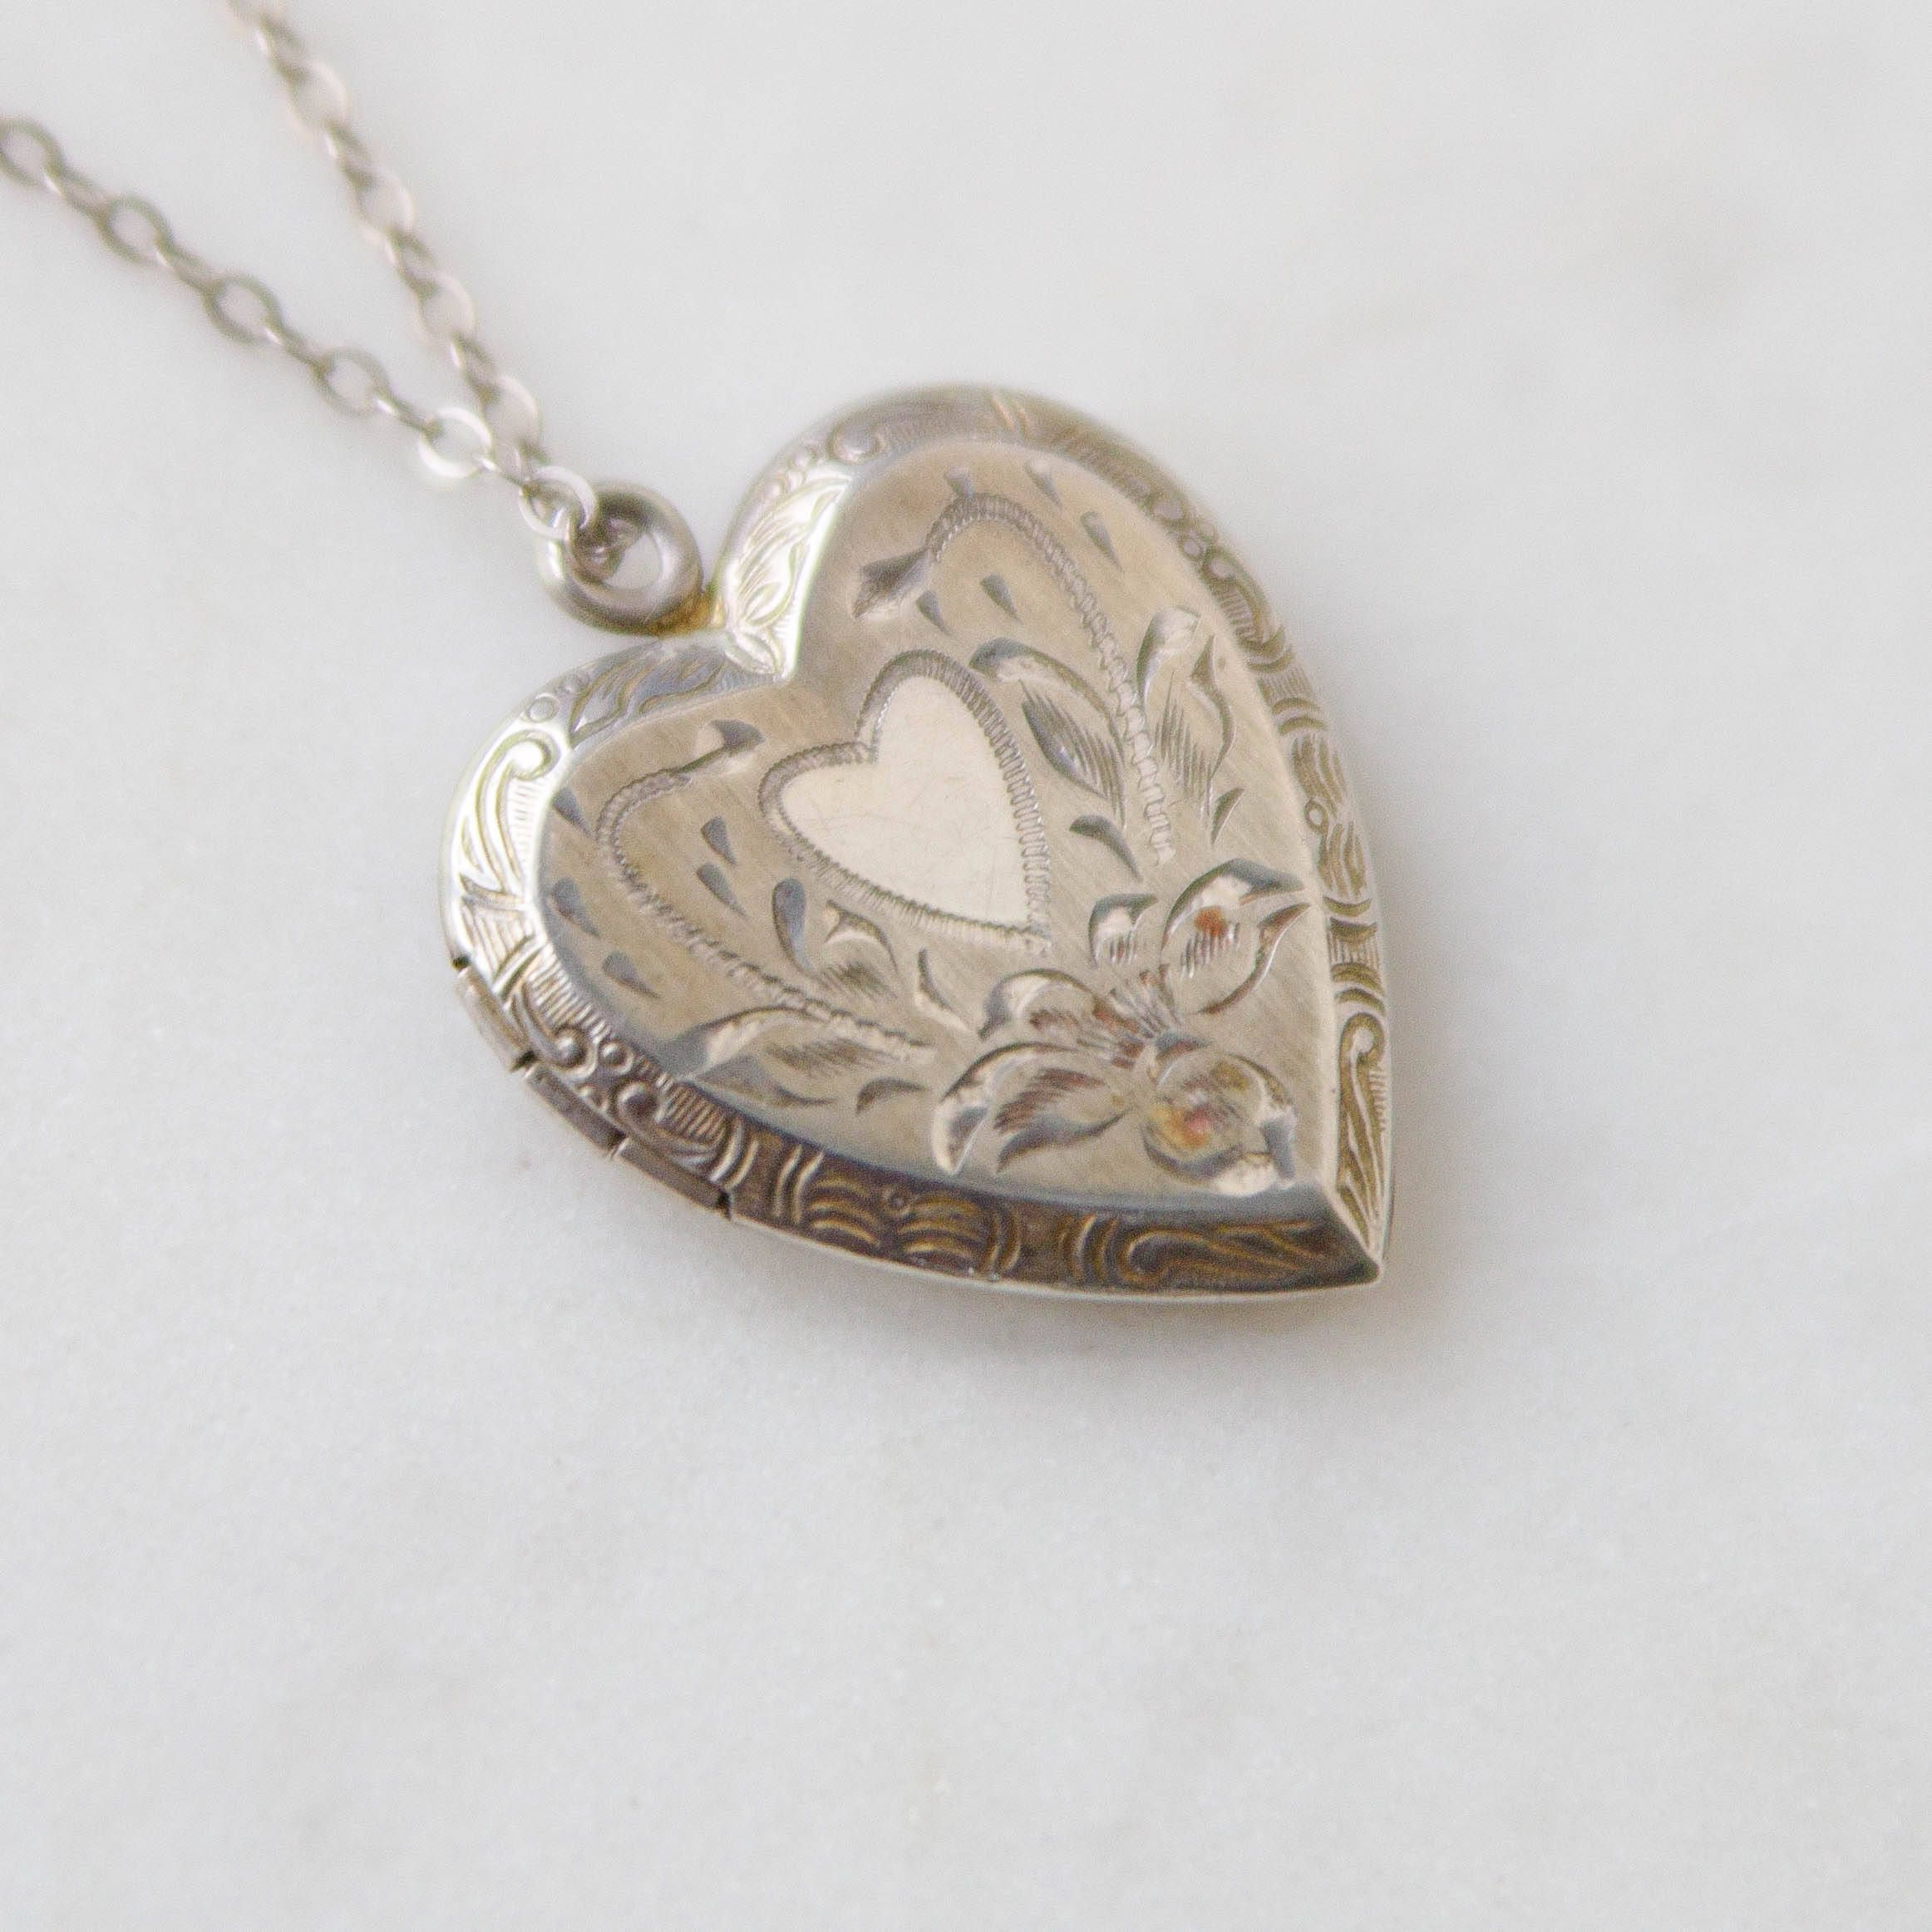 Vintage locket necklace romantic photograph jewelry deco